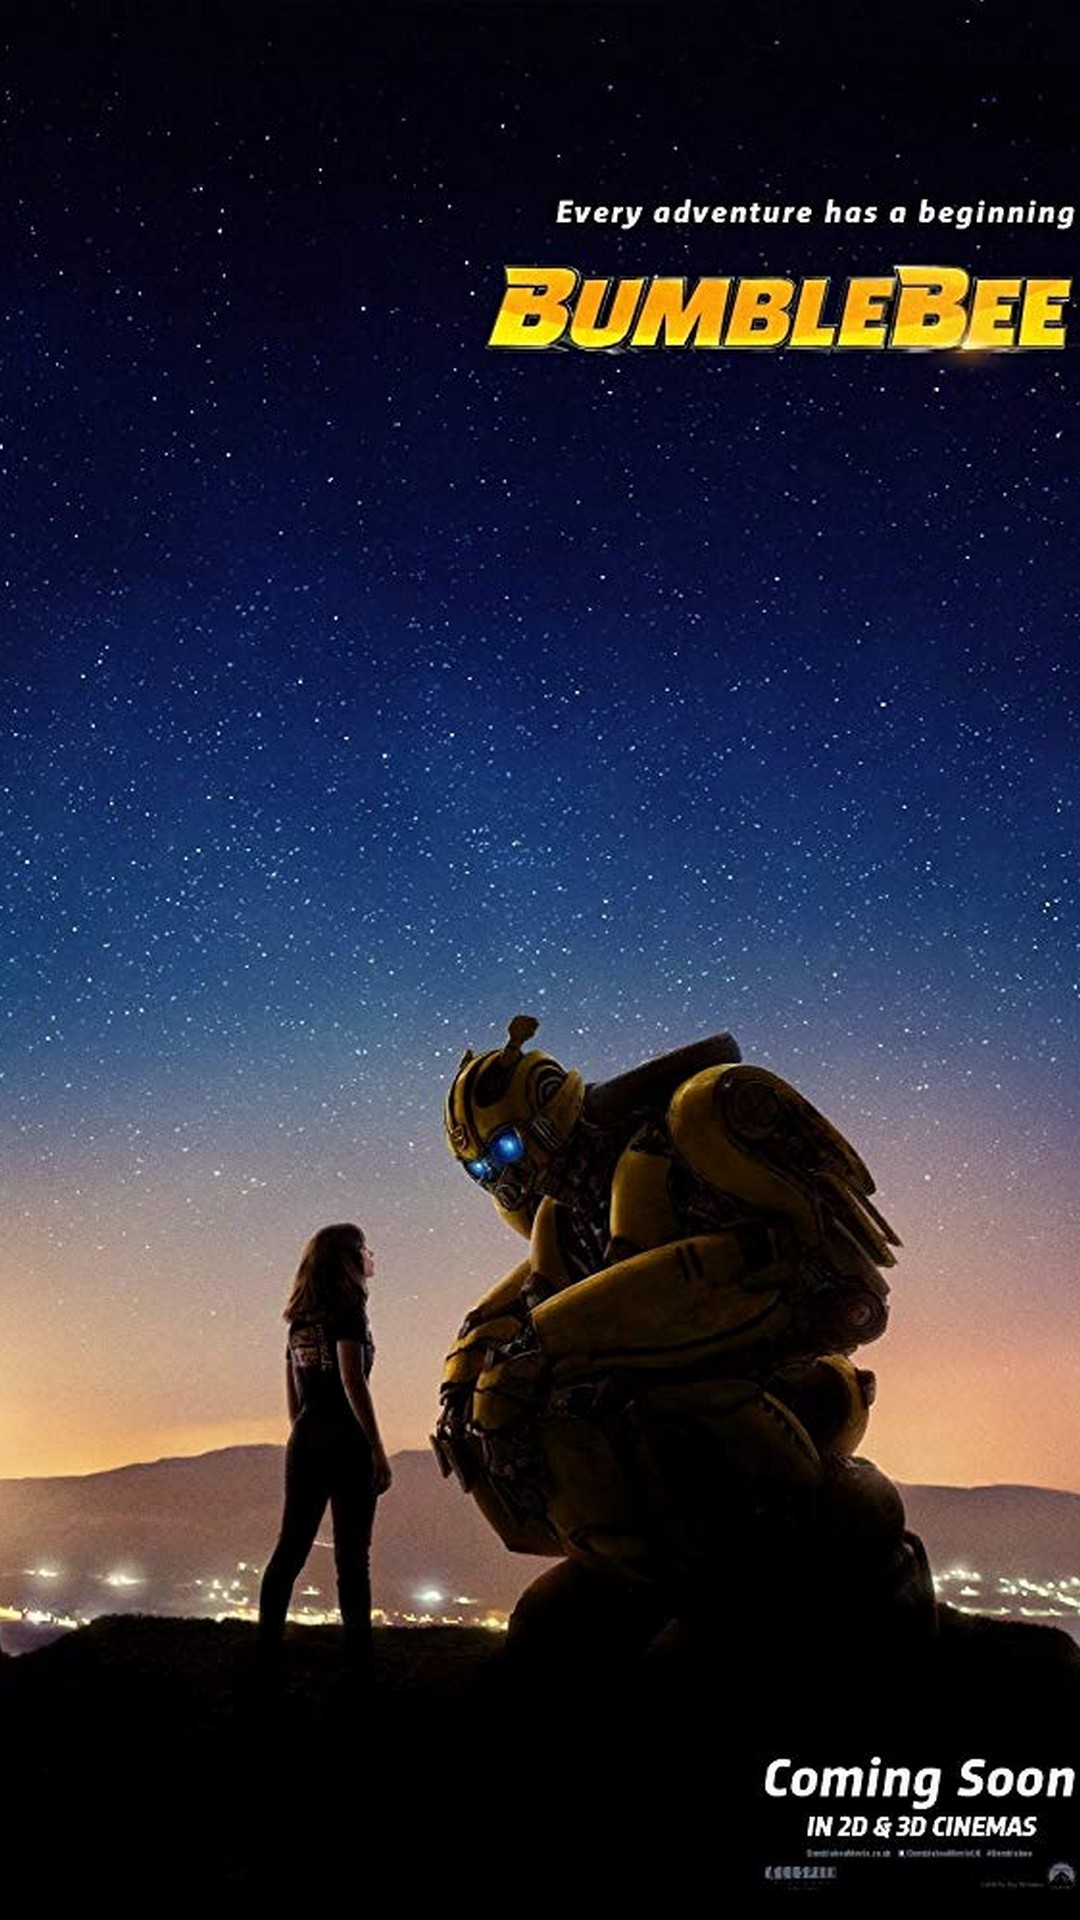 Android Wallpaper For Mobile Bumblebee Mobile Wallpaper 2019 Movie Poster Wallpaper Hd